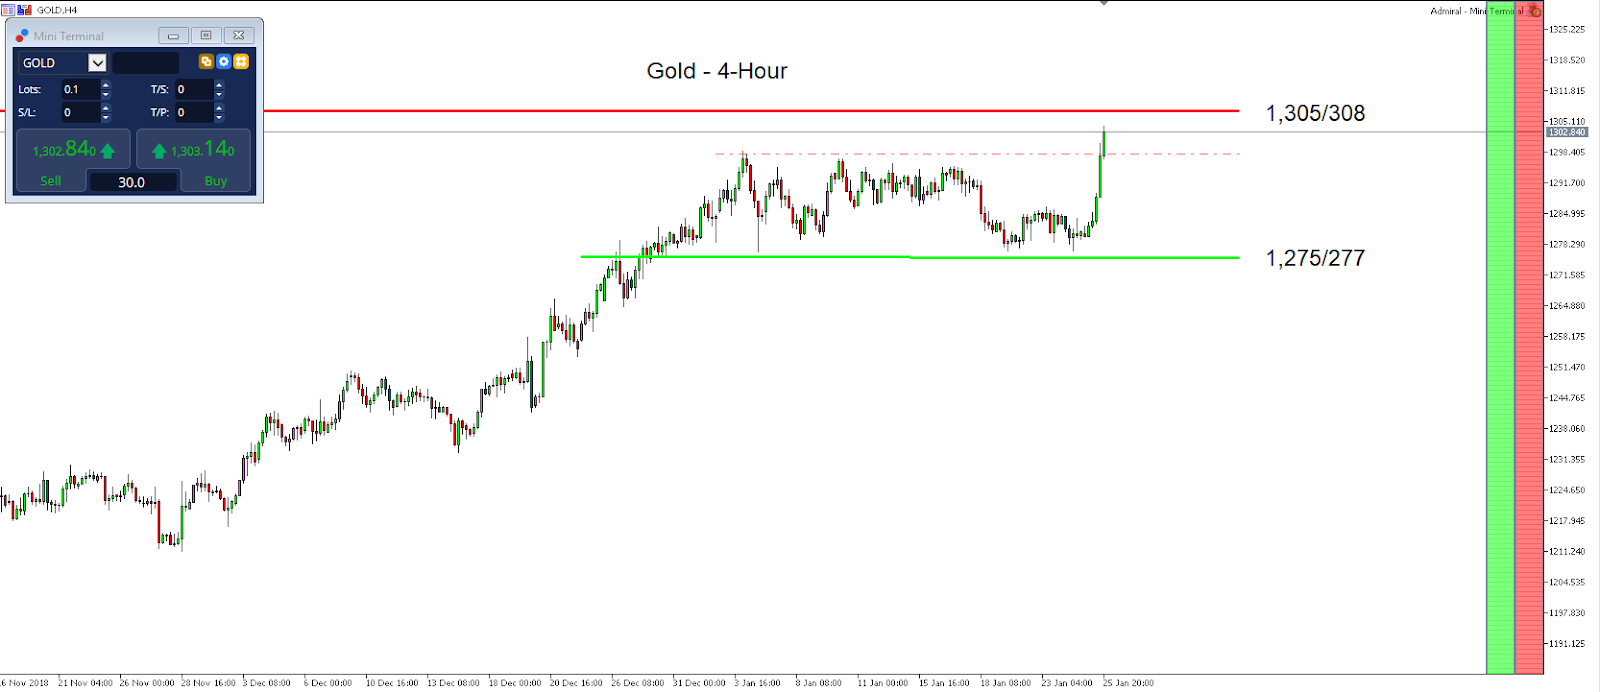 Gold Hourly Chart - MetaTrader 5 Supreme Edition